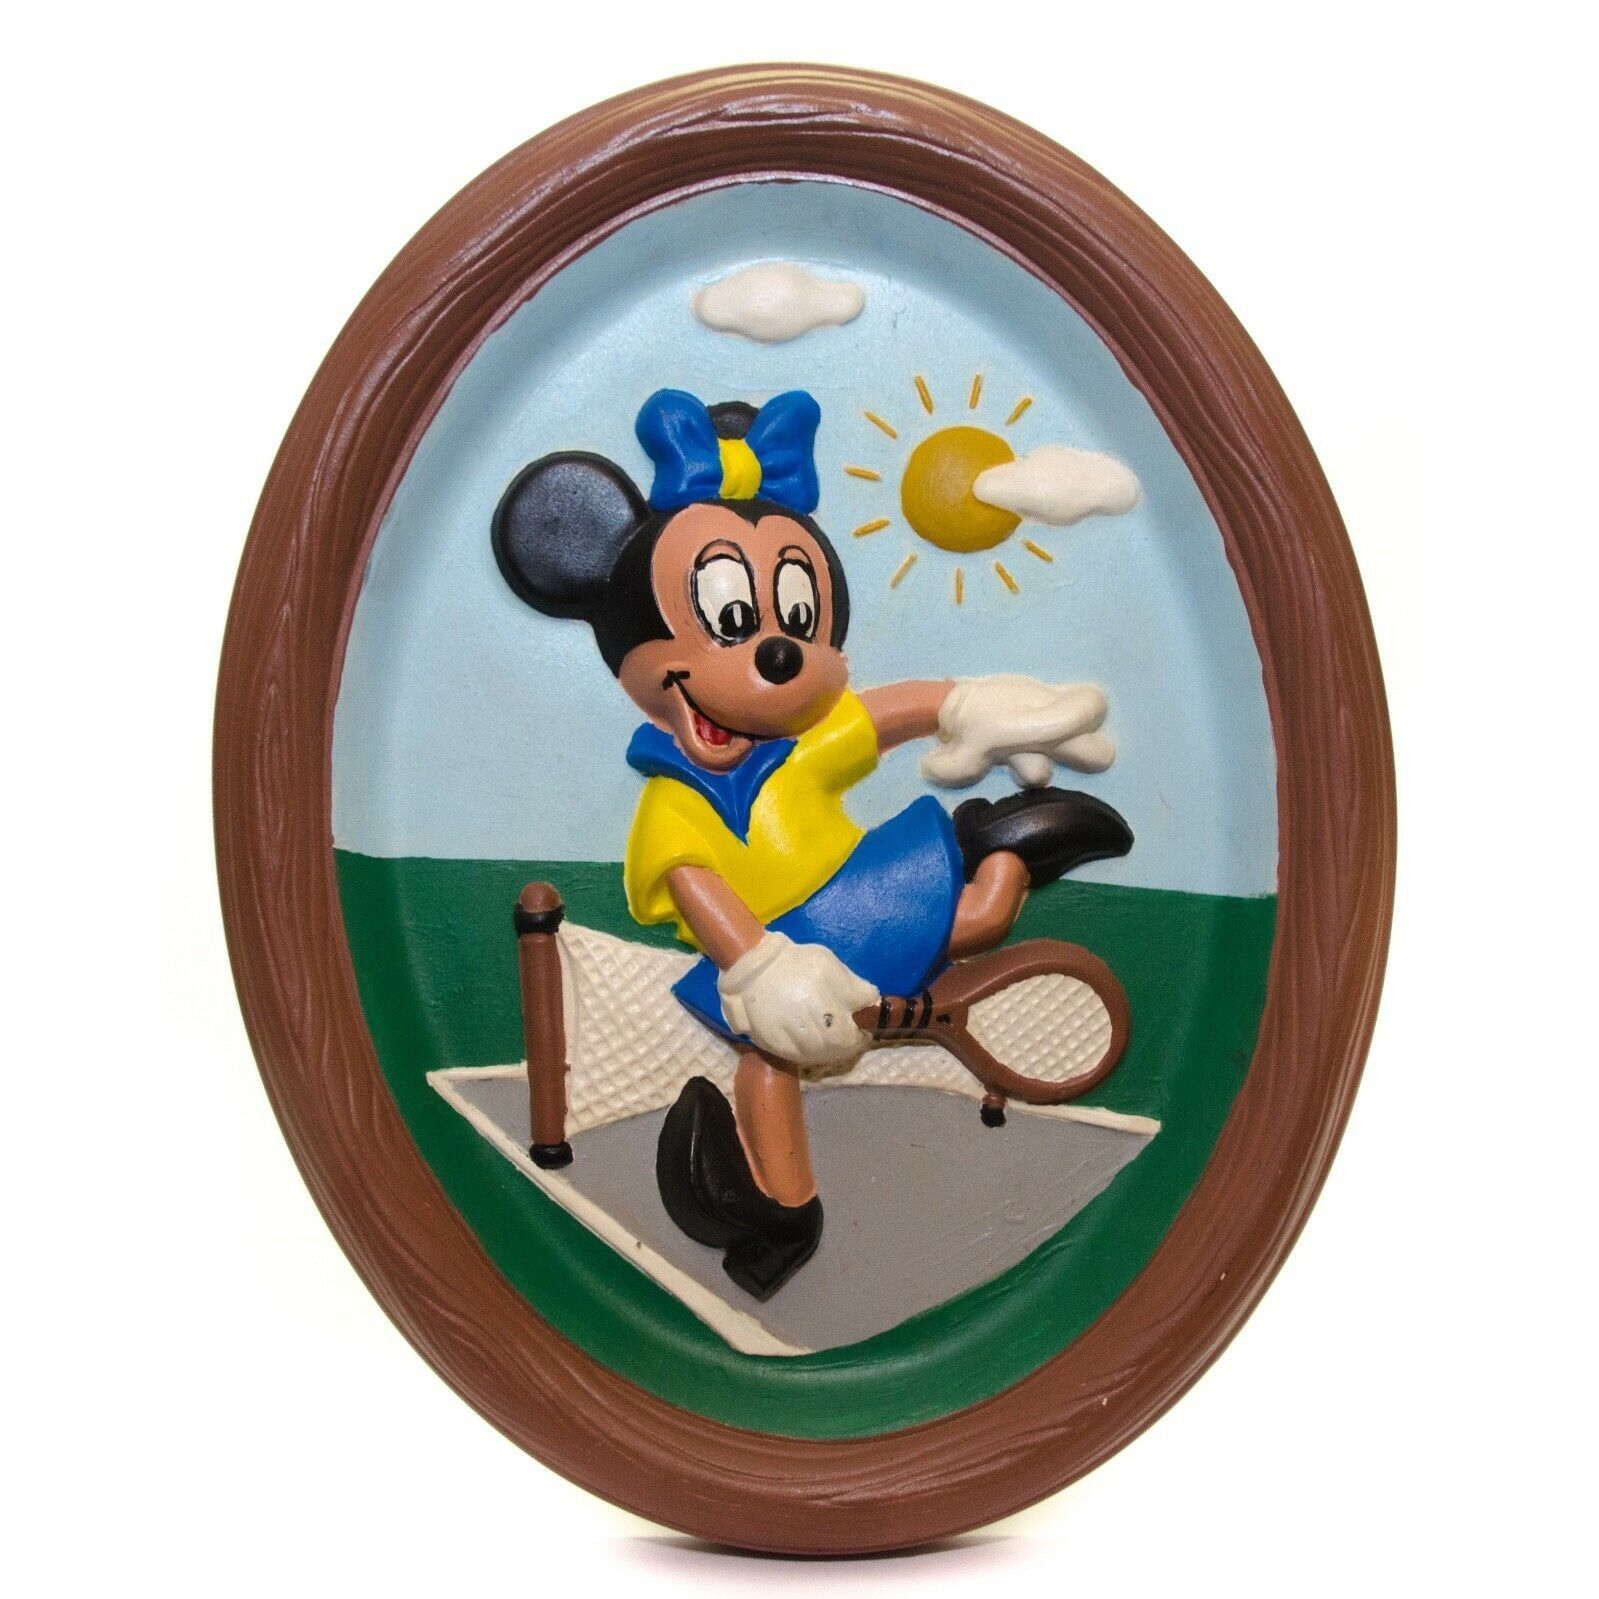 Vintage Walt Disney Productions Minnie Mouse Playing Tennis Ceramic Wall Hanging - $24.72